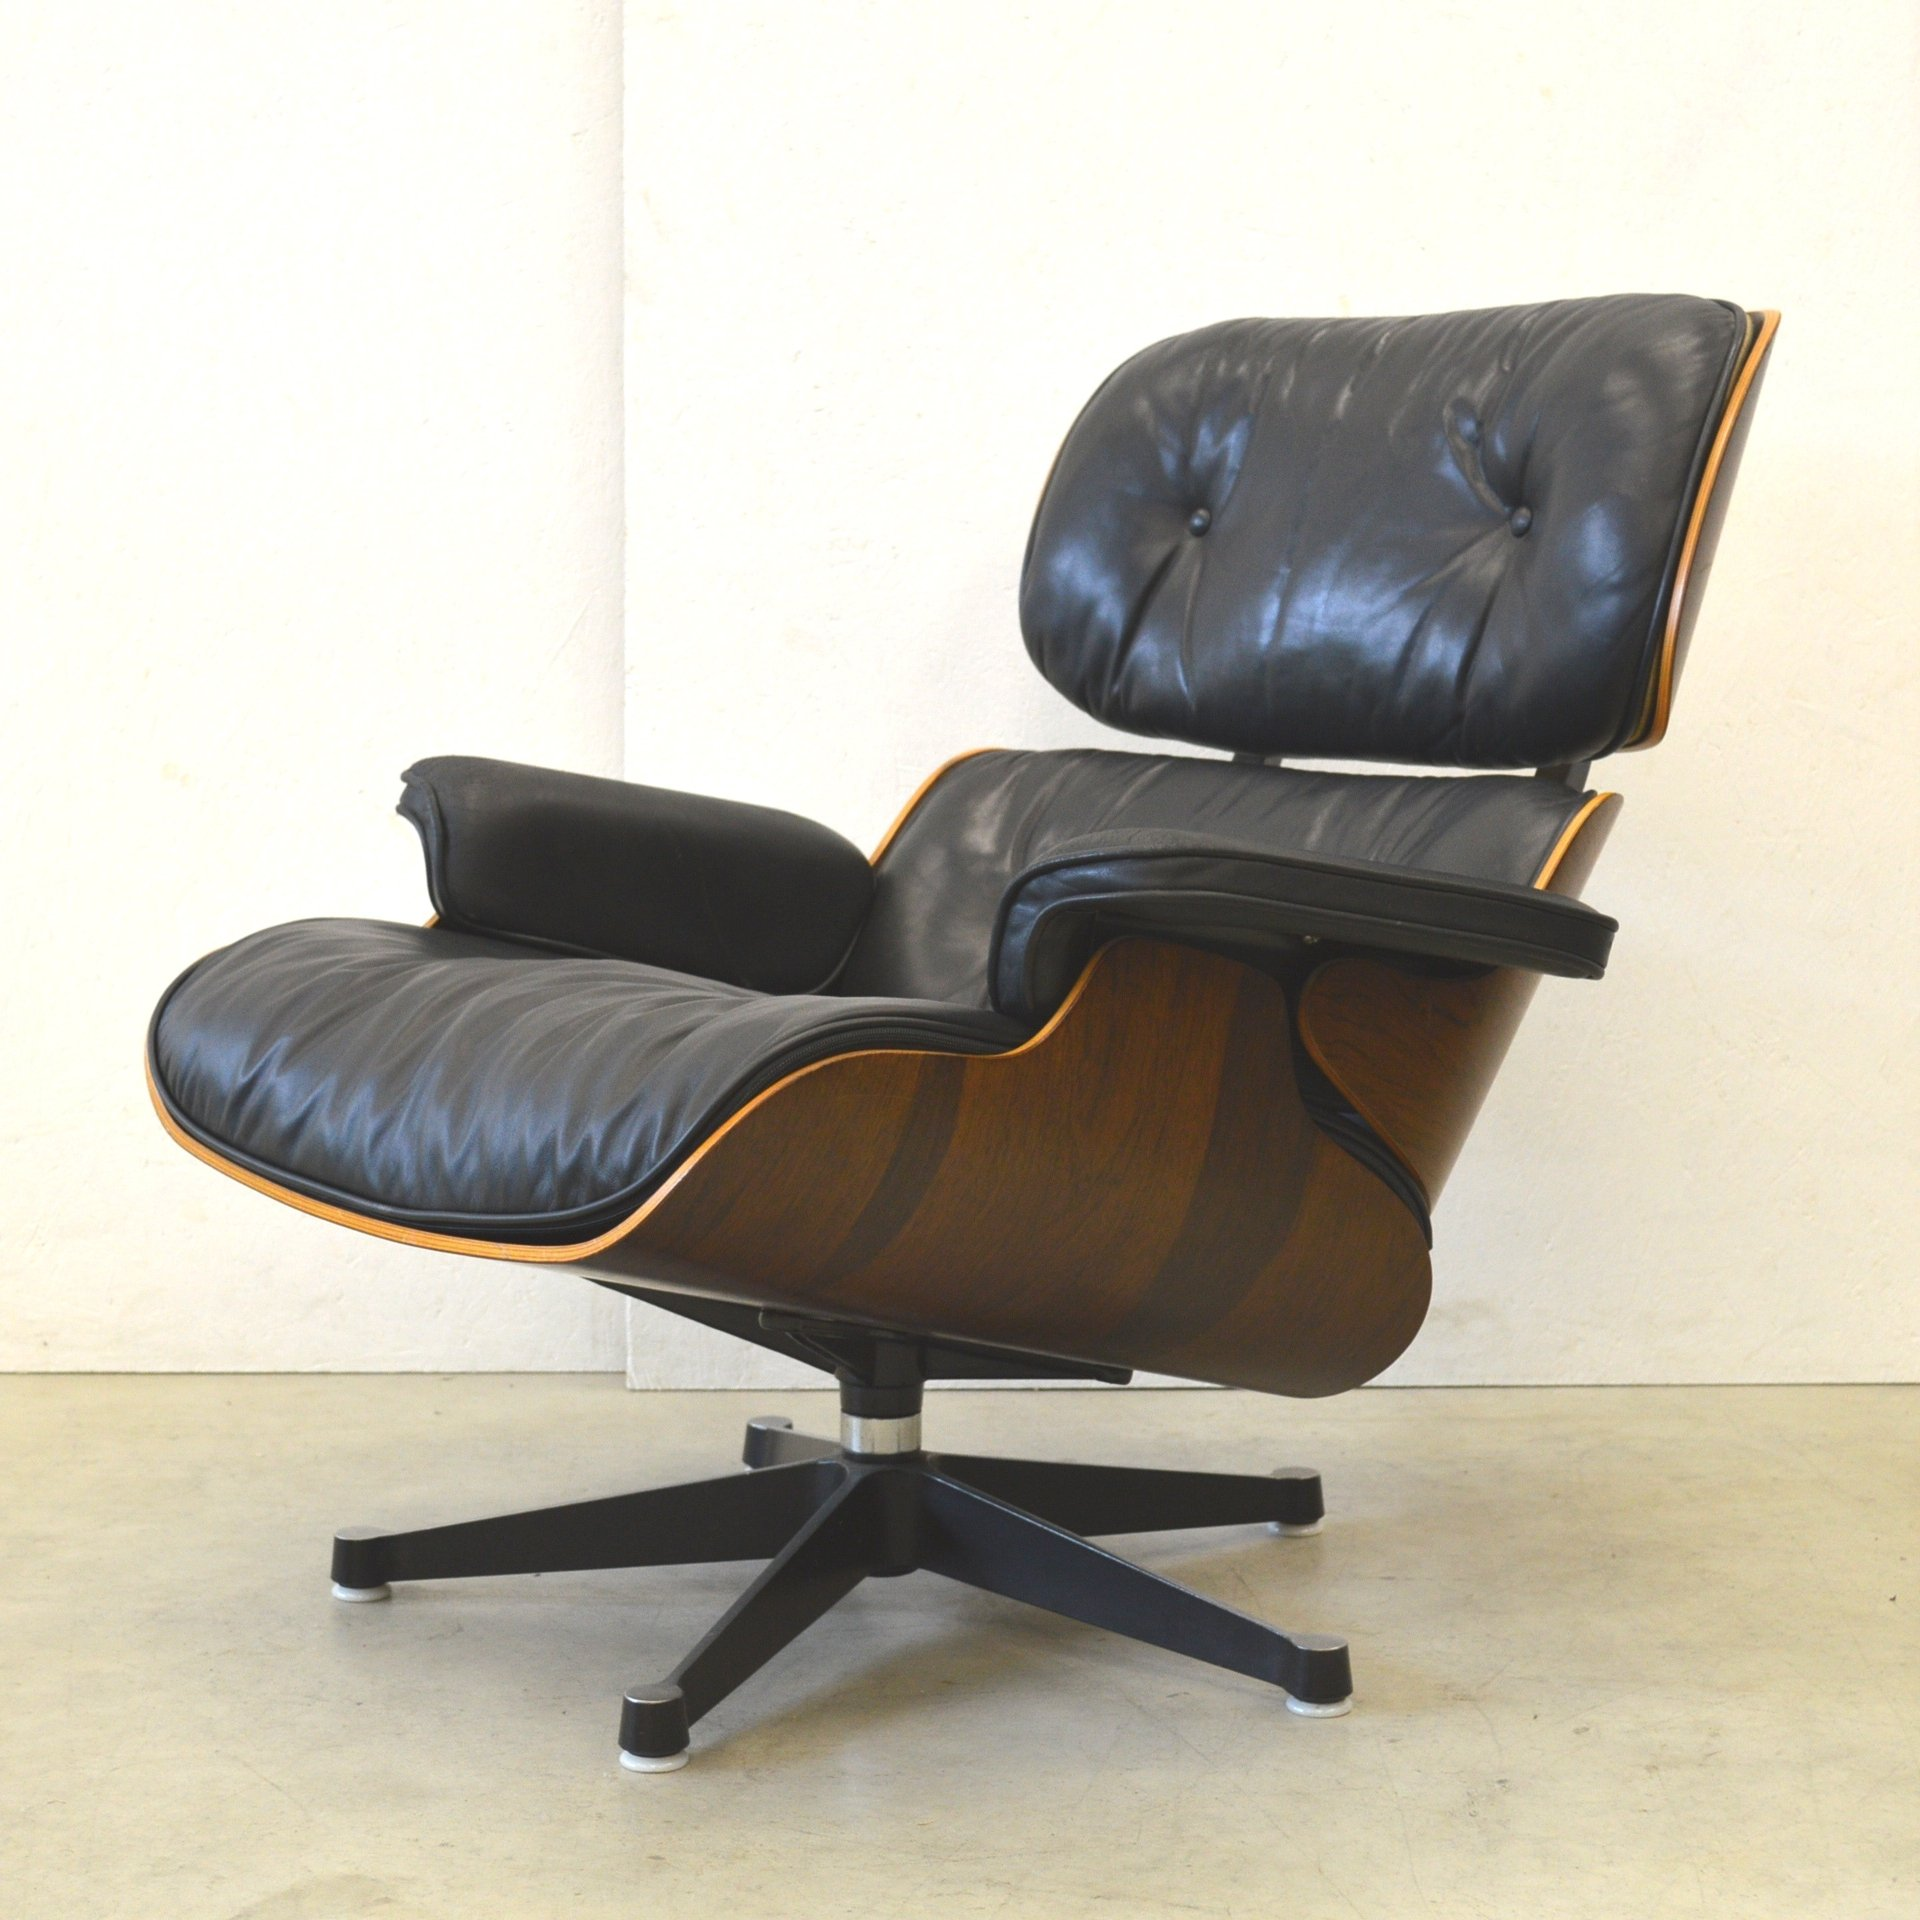 Rosewood lounge chair by charles ray eames for herman miller 1970s - Eames chair herman miller ...